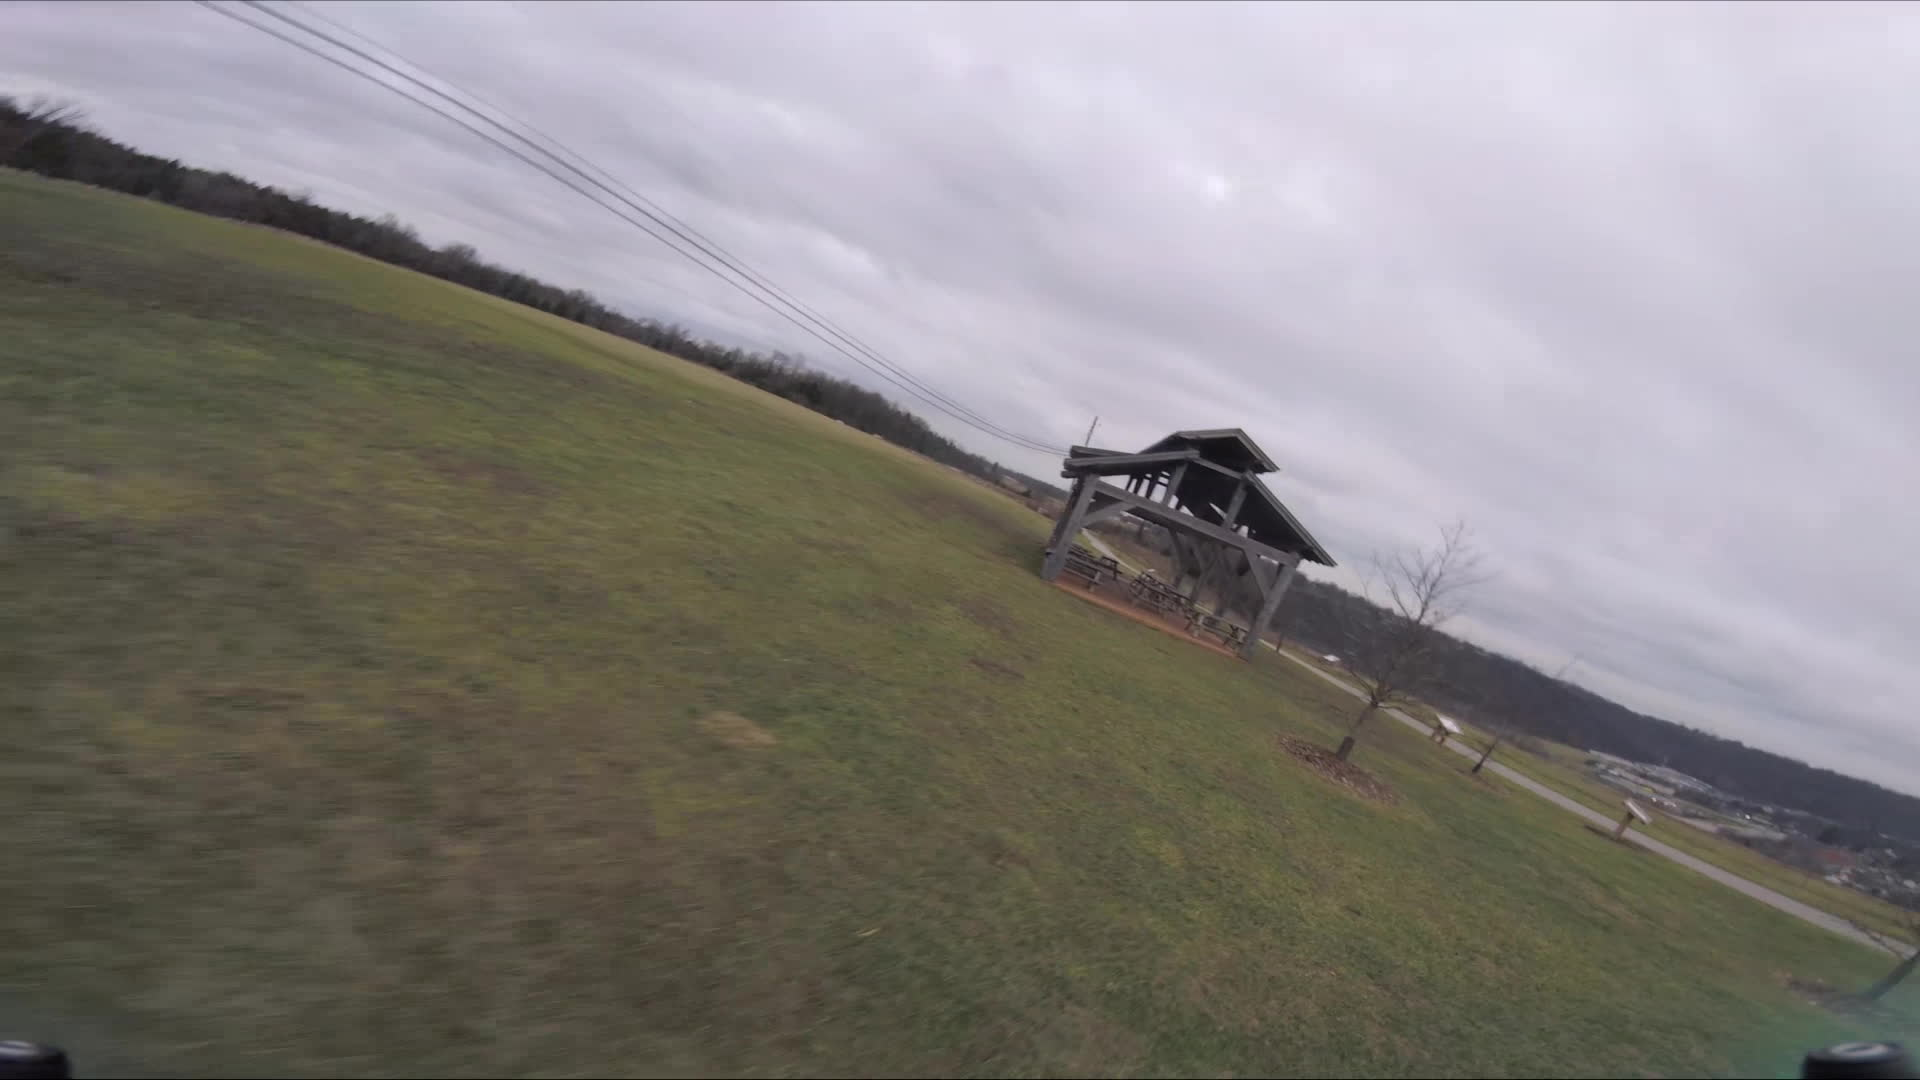 drone, fpv, fpv freestyle, fpv racing, multicopter, multirotor, My first power loop GIFs